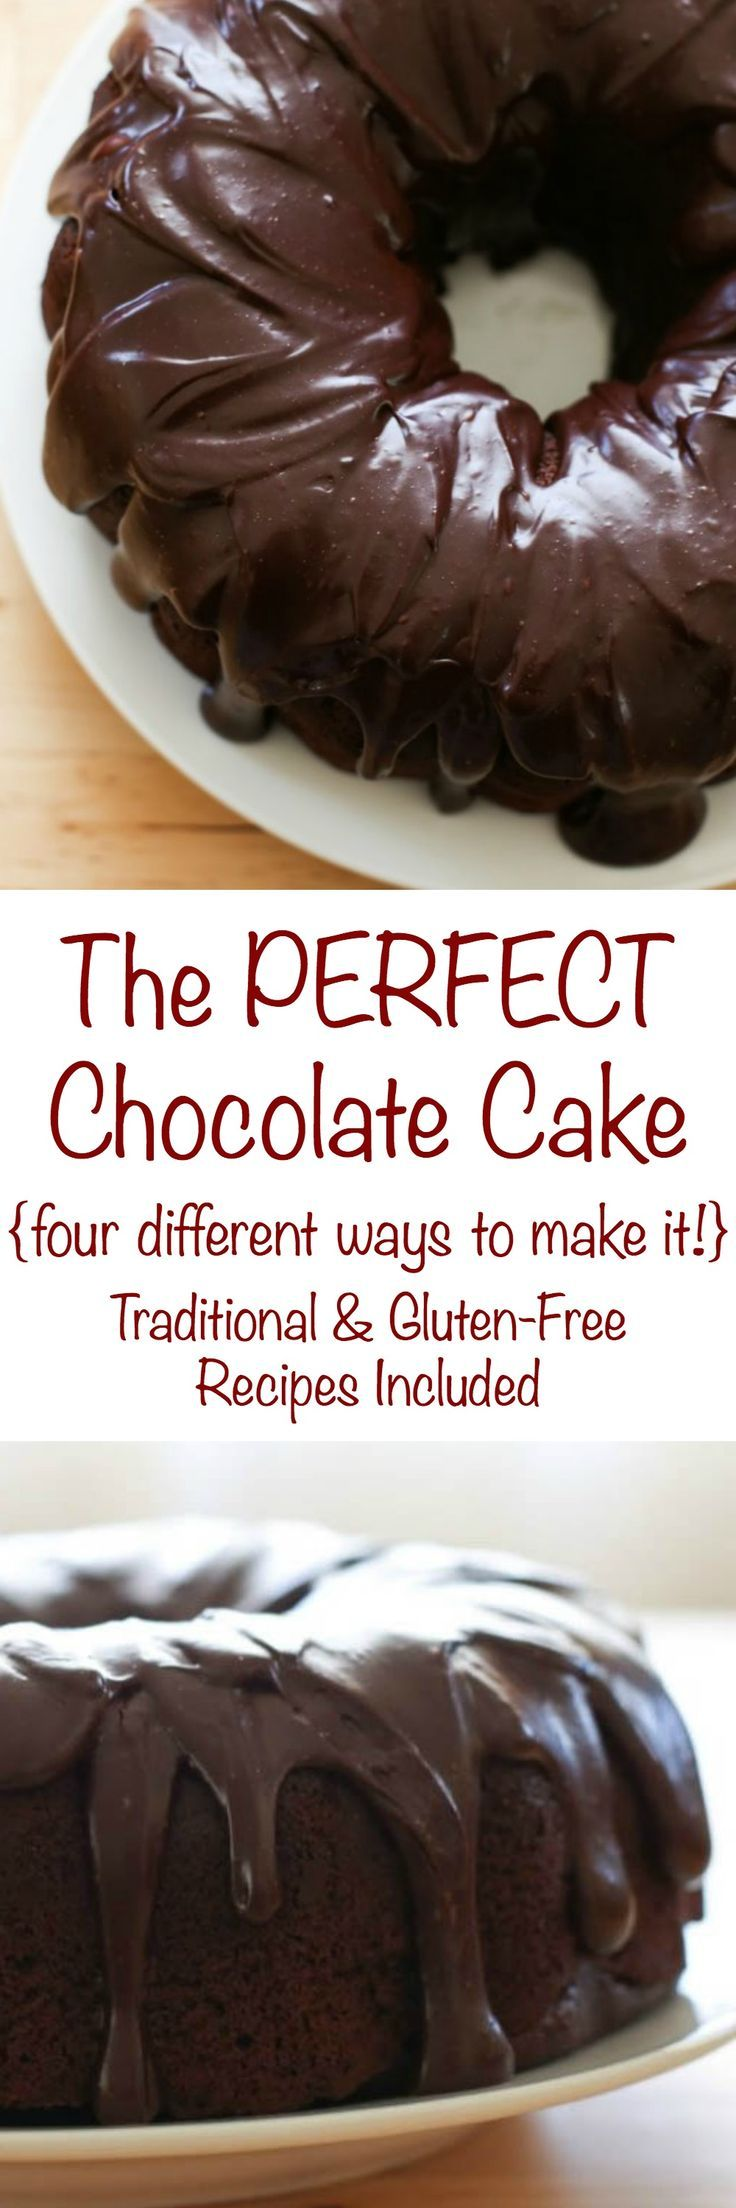 This cake is truly the most versatile and easiest chocolate cake recipe I have ever made. There is nothing quite like having a lightning fast cake recipe that turns out perfectly every single time.